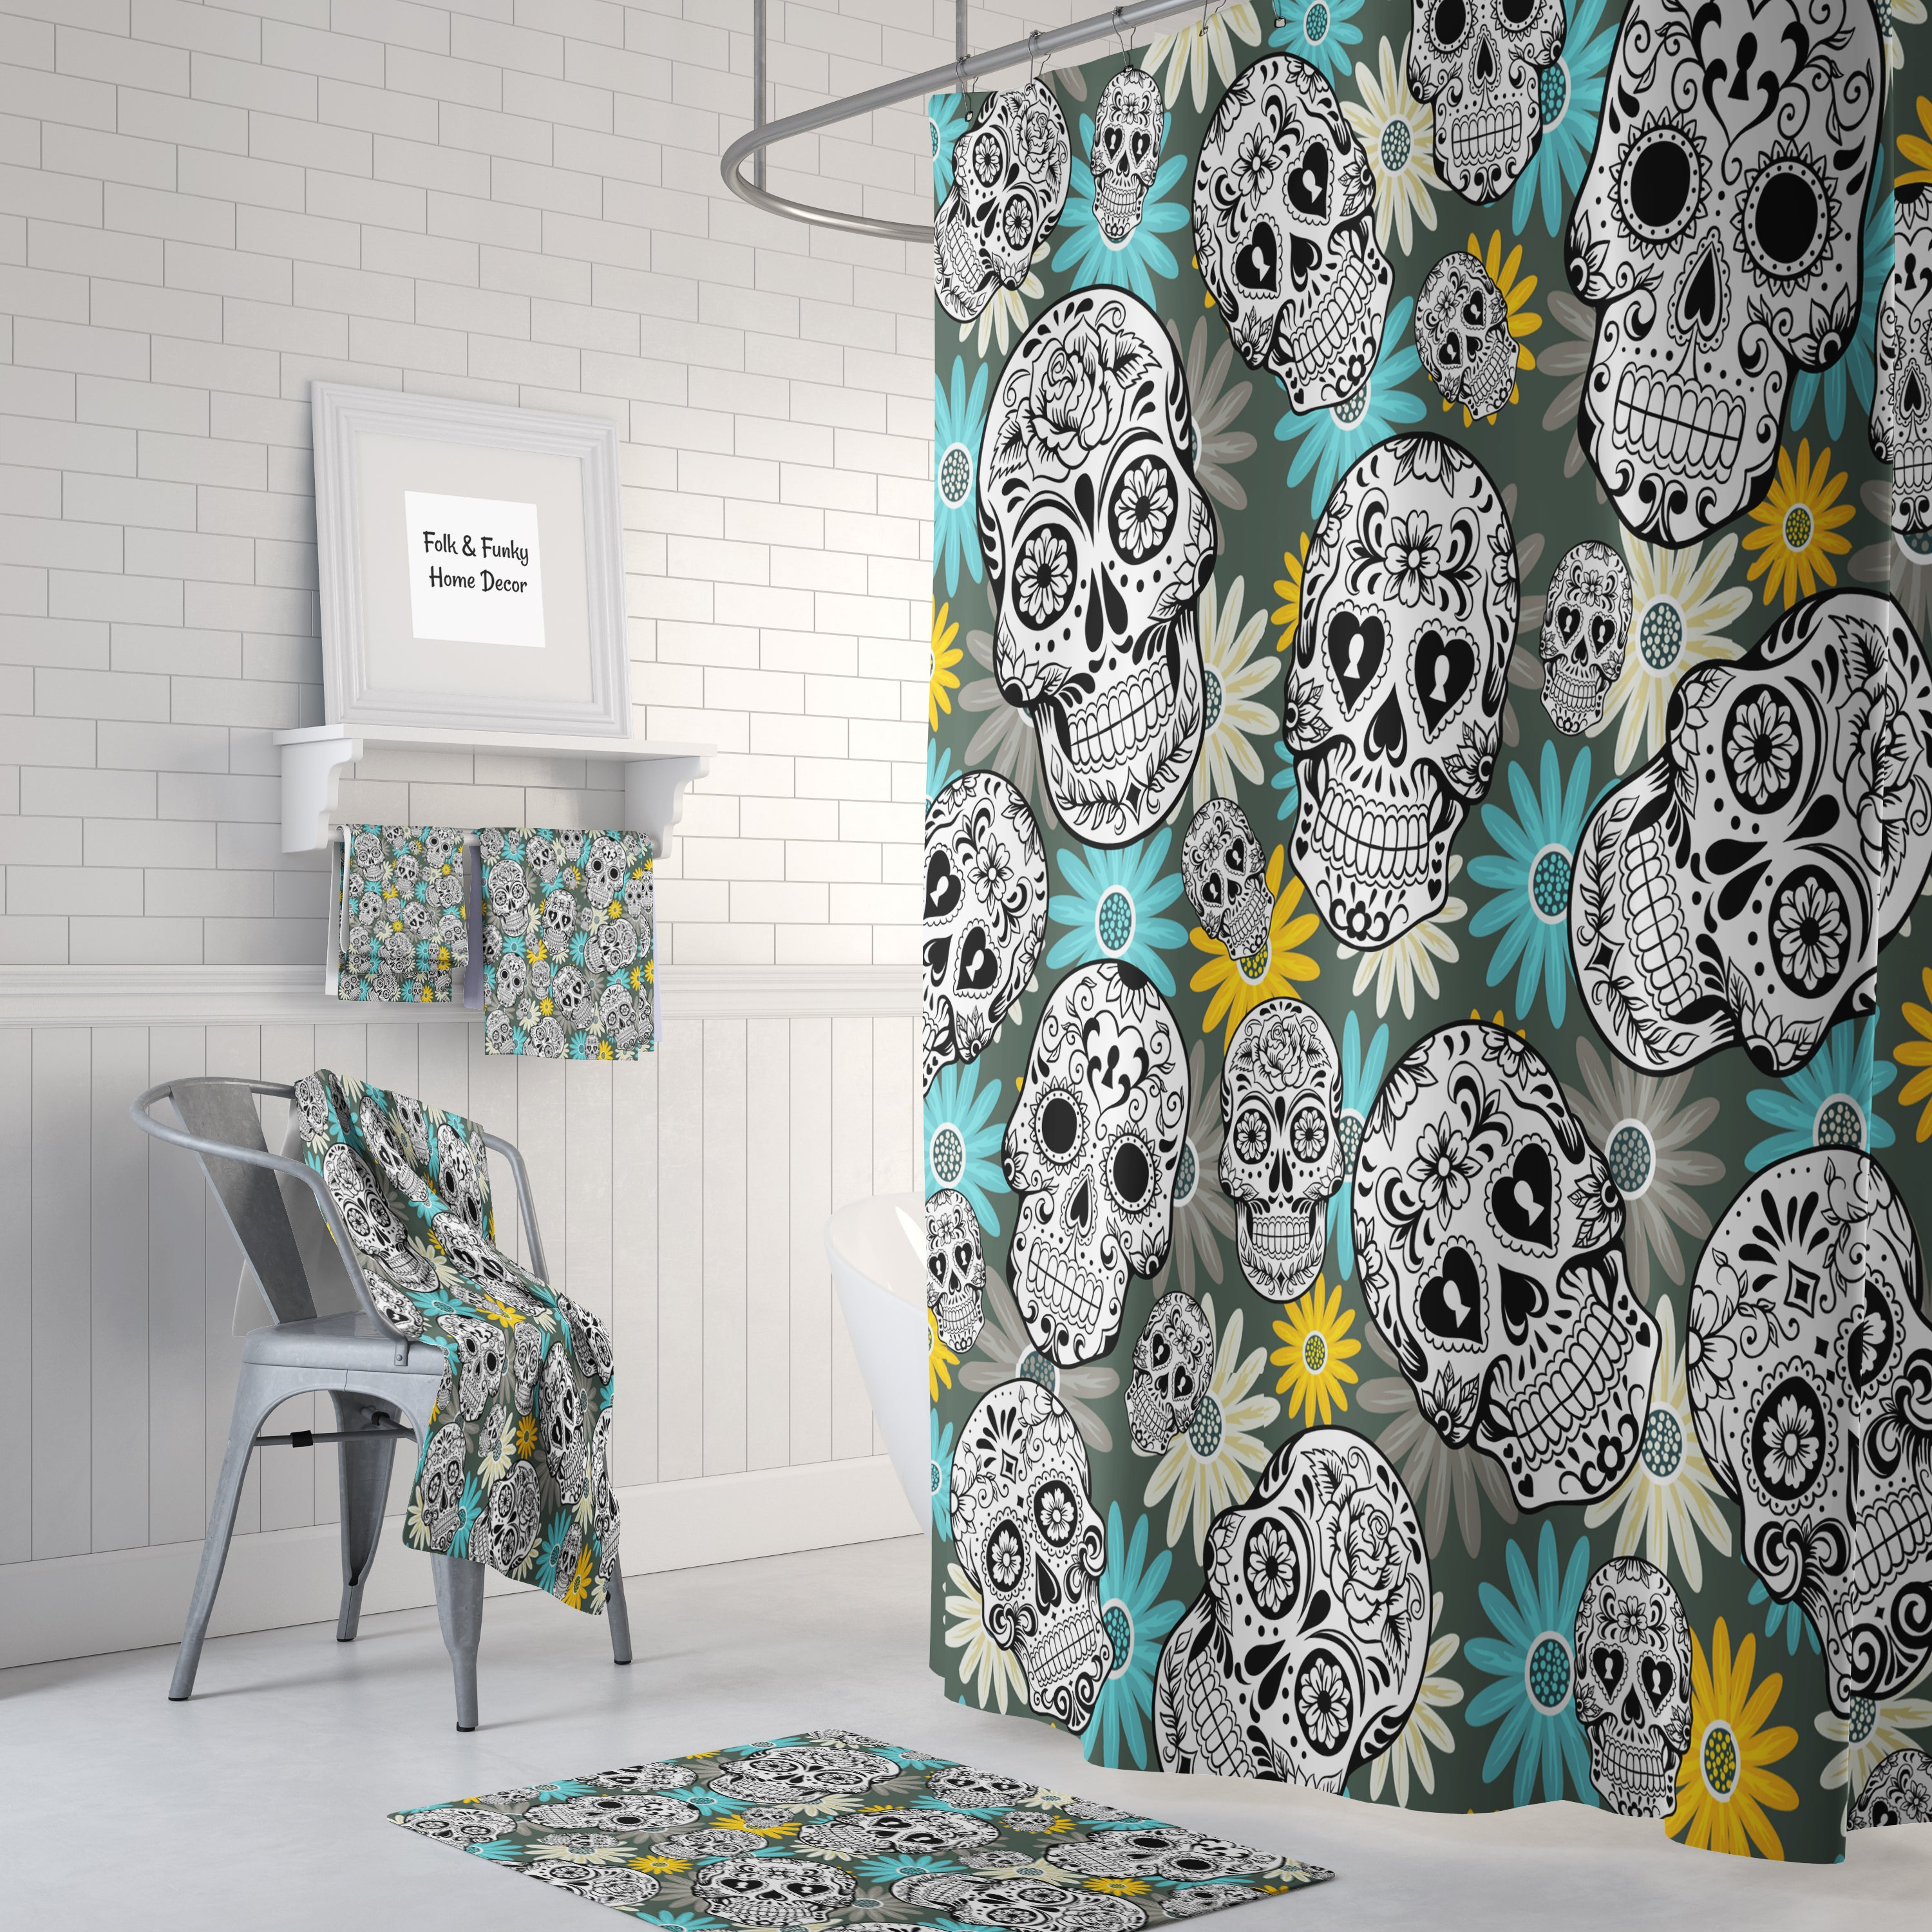 The Teal and Yellow Sugar Skull Bathroom Set